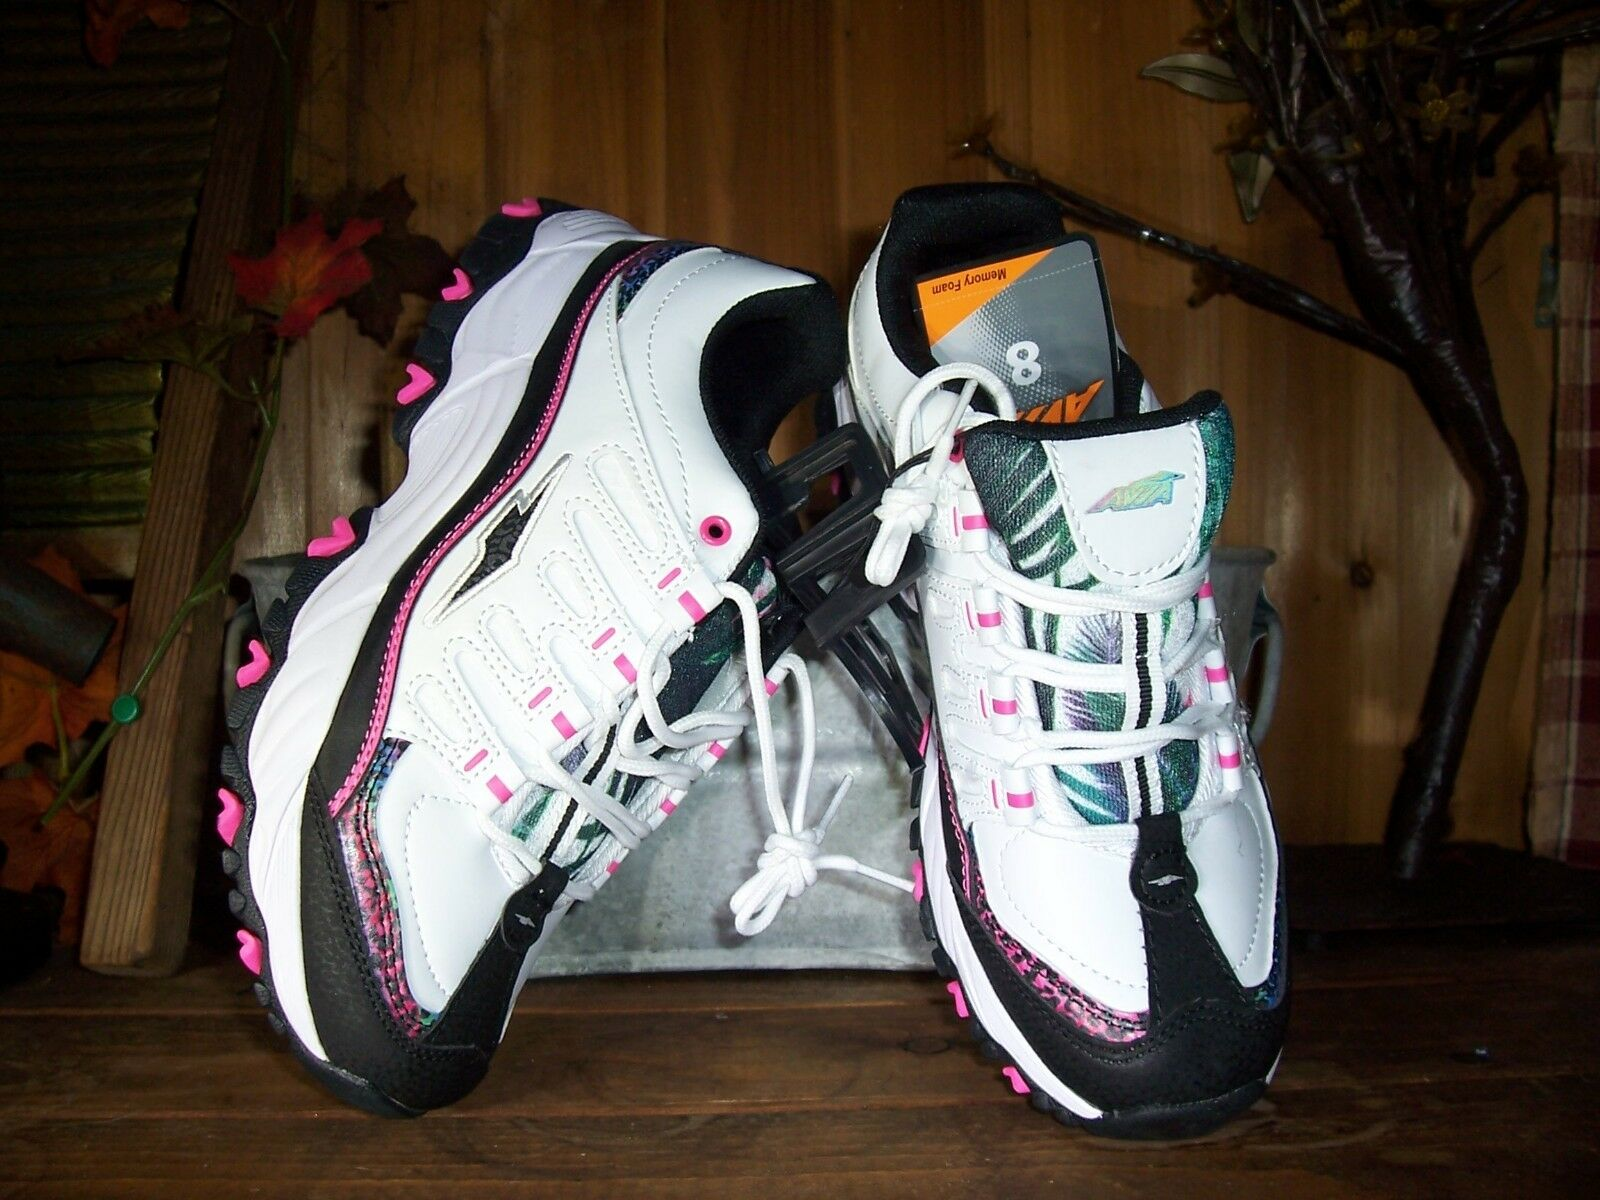 AVIA WOMENS ATHLETIC SHOES SIZE 8 MEMORY FOAM WHITE PINK LADIES CASUAL STYLISH